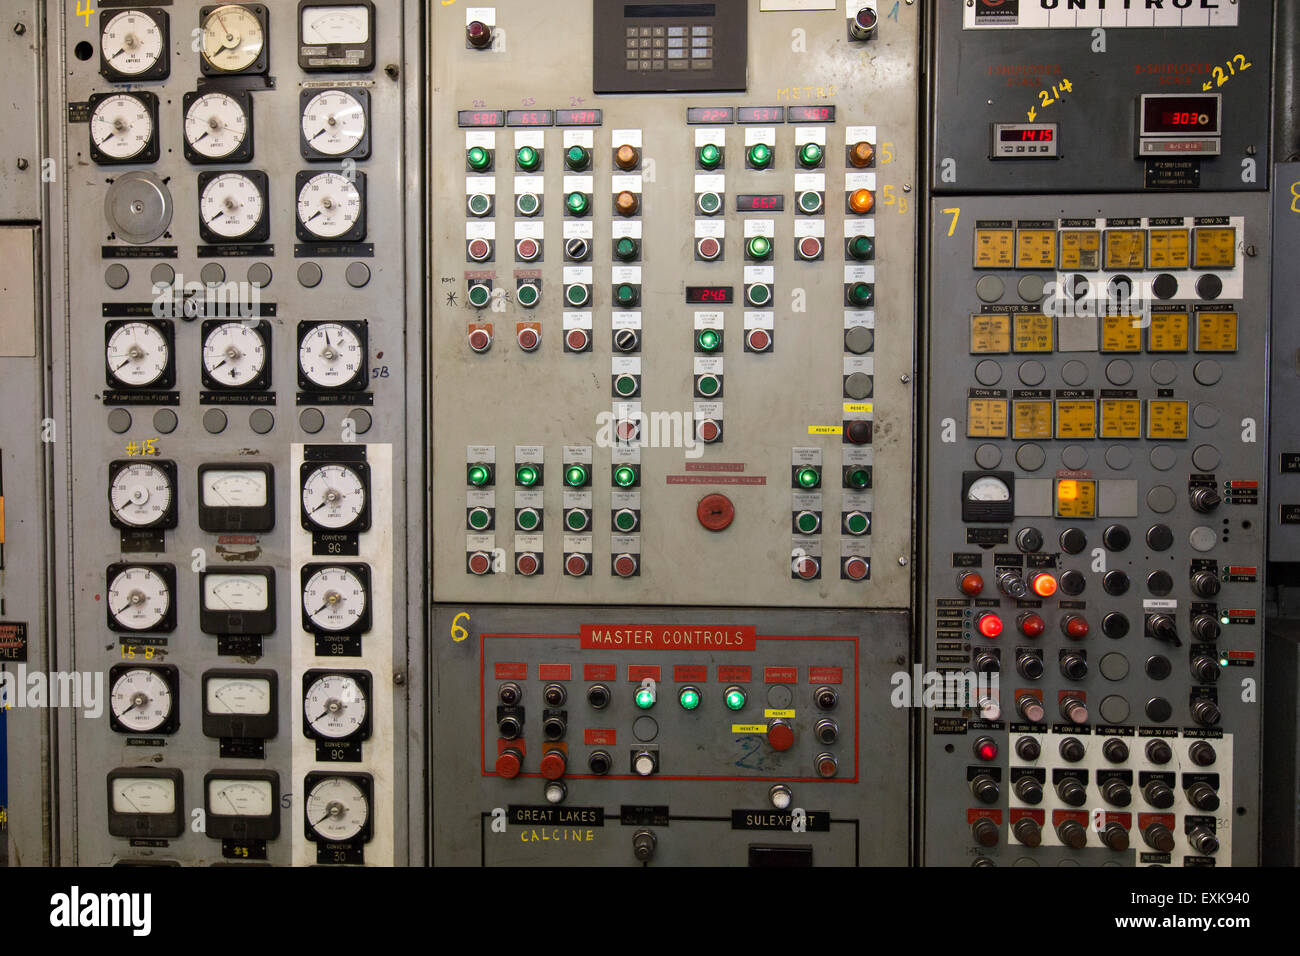 power plant control panel - Stock Image